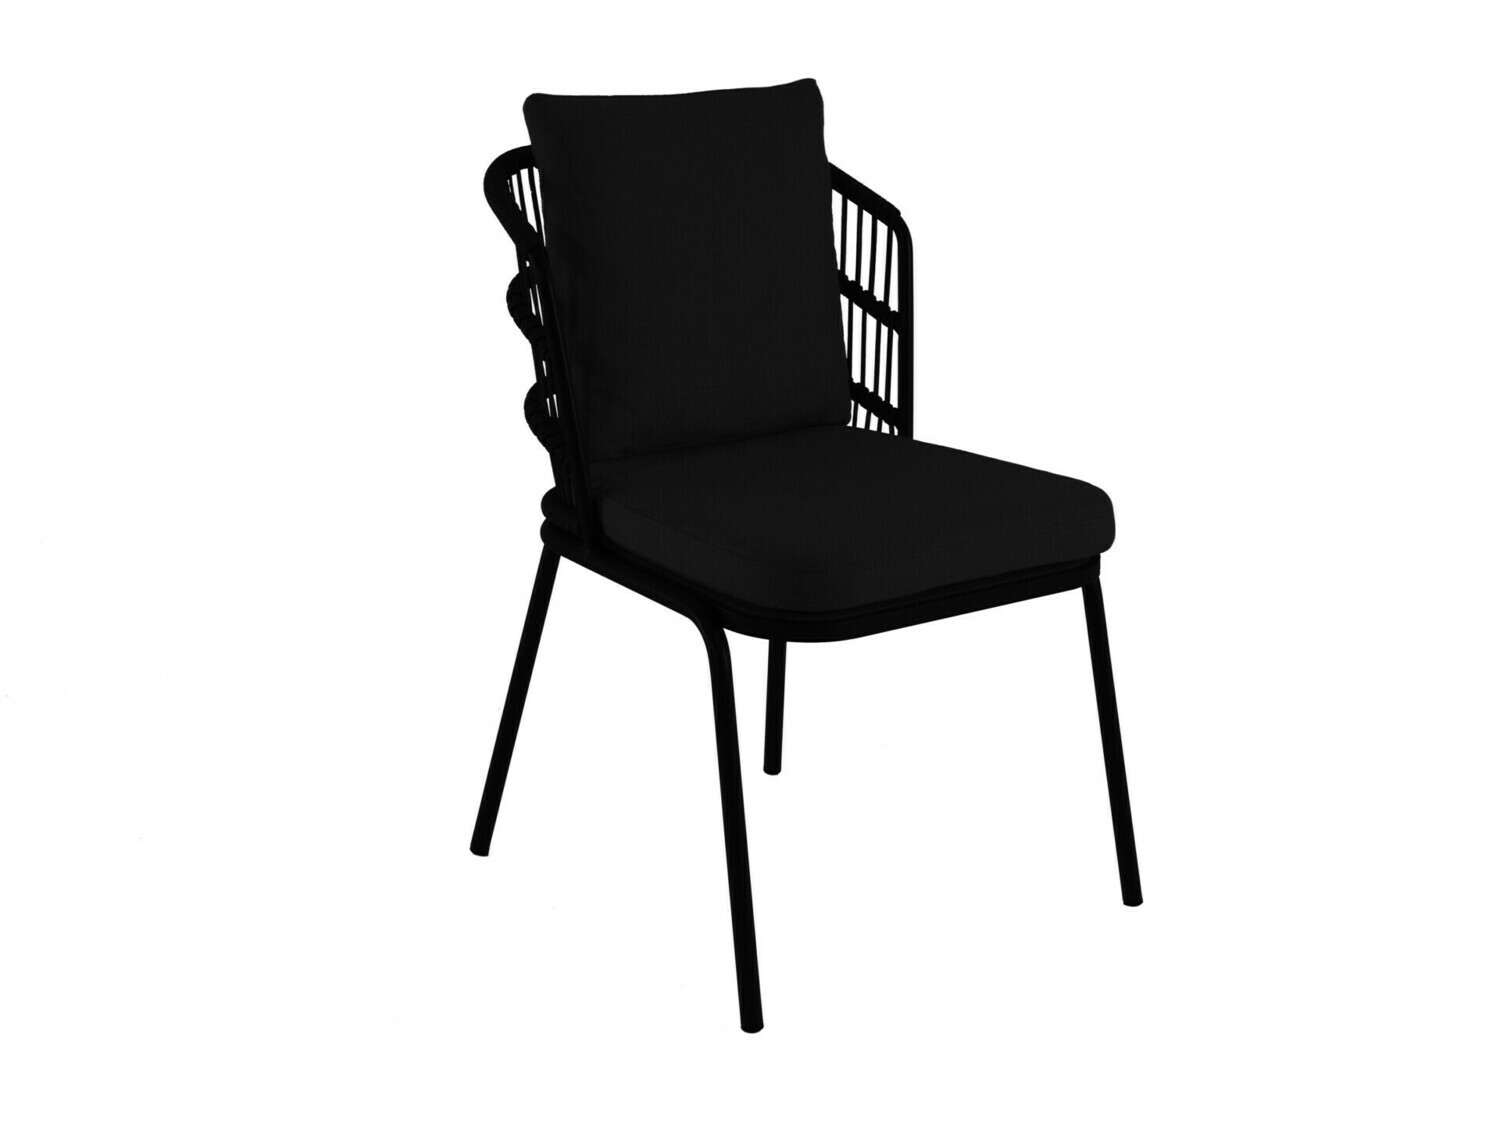 PIRLO CHAIR